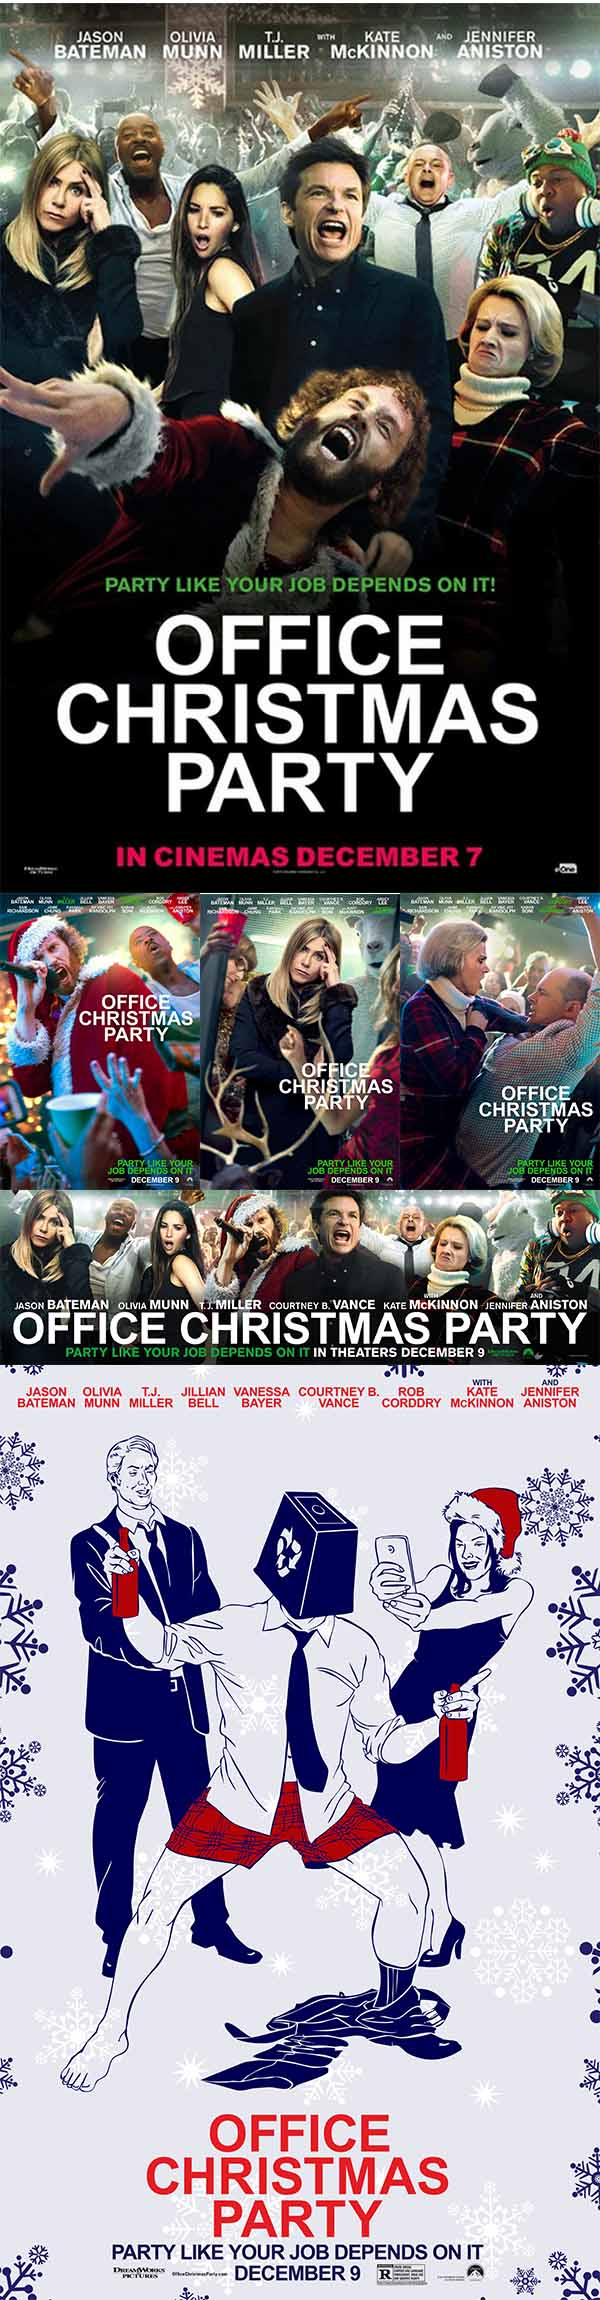 Movie Posters - Office Christmas Party Posters Posters 10 JPG   1382 ...